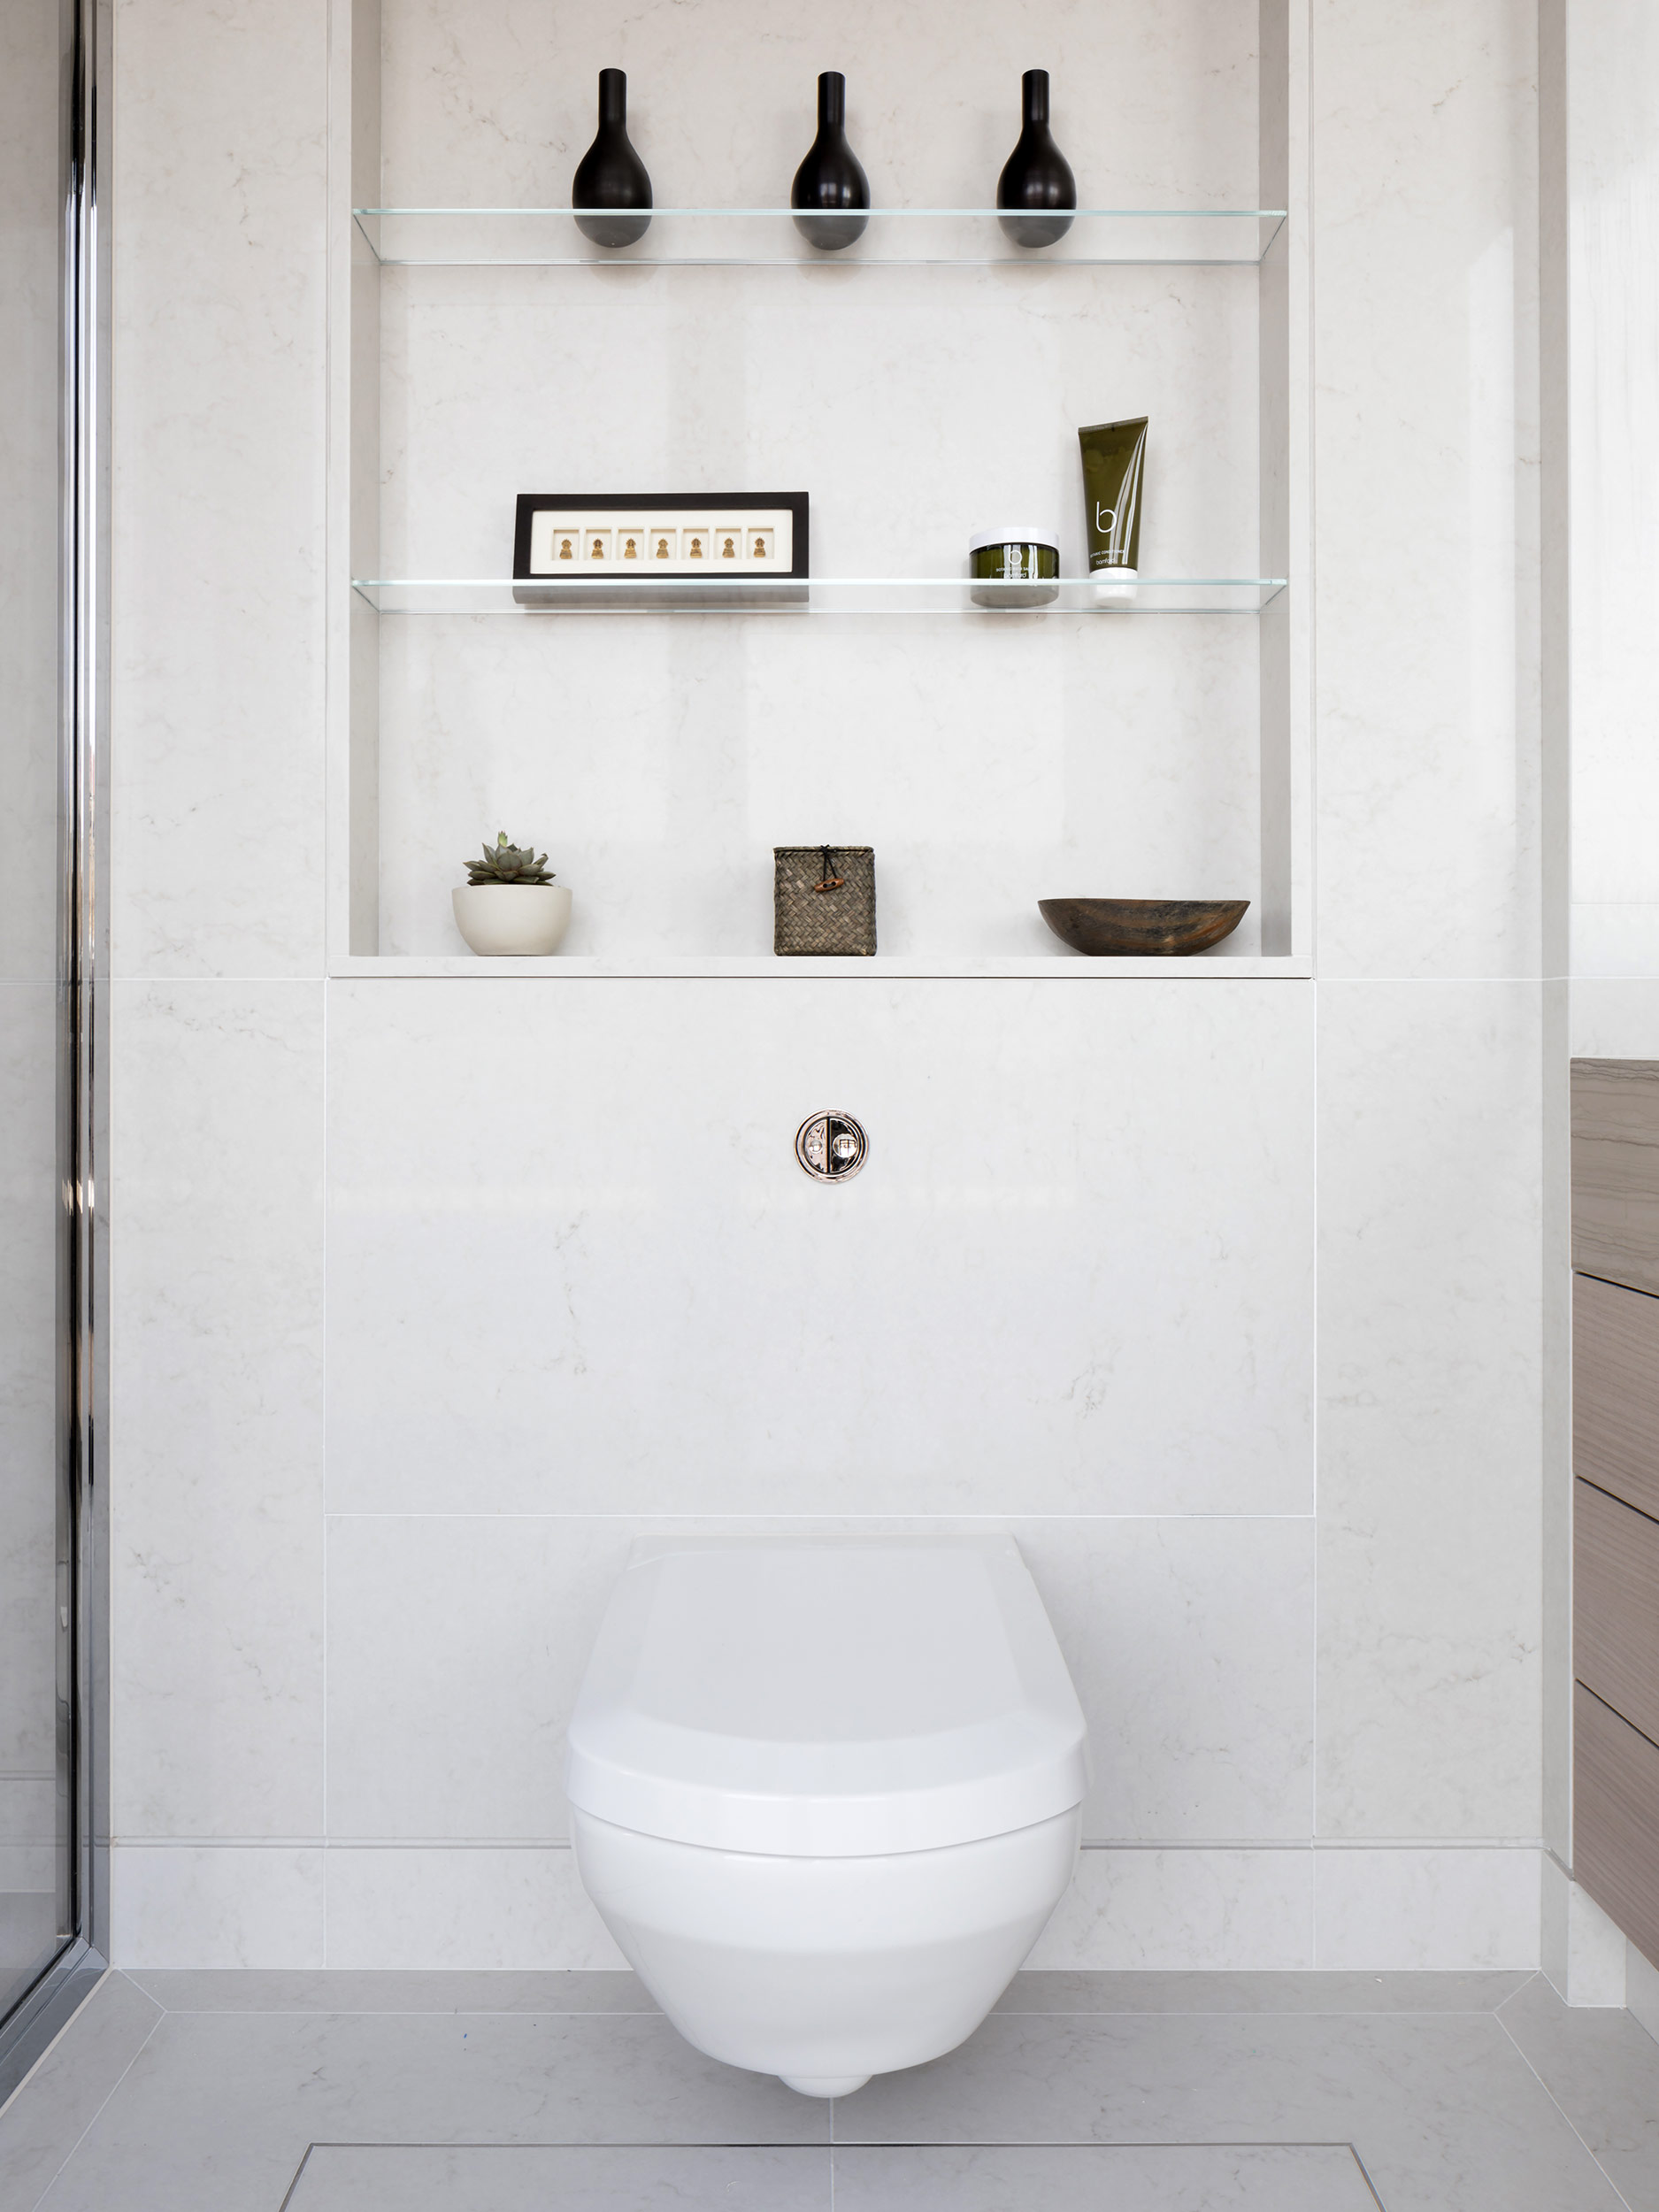 West One Bathrooms Case Studies Luxlo Penthouse Guest Bath 3a